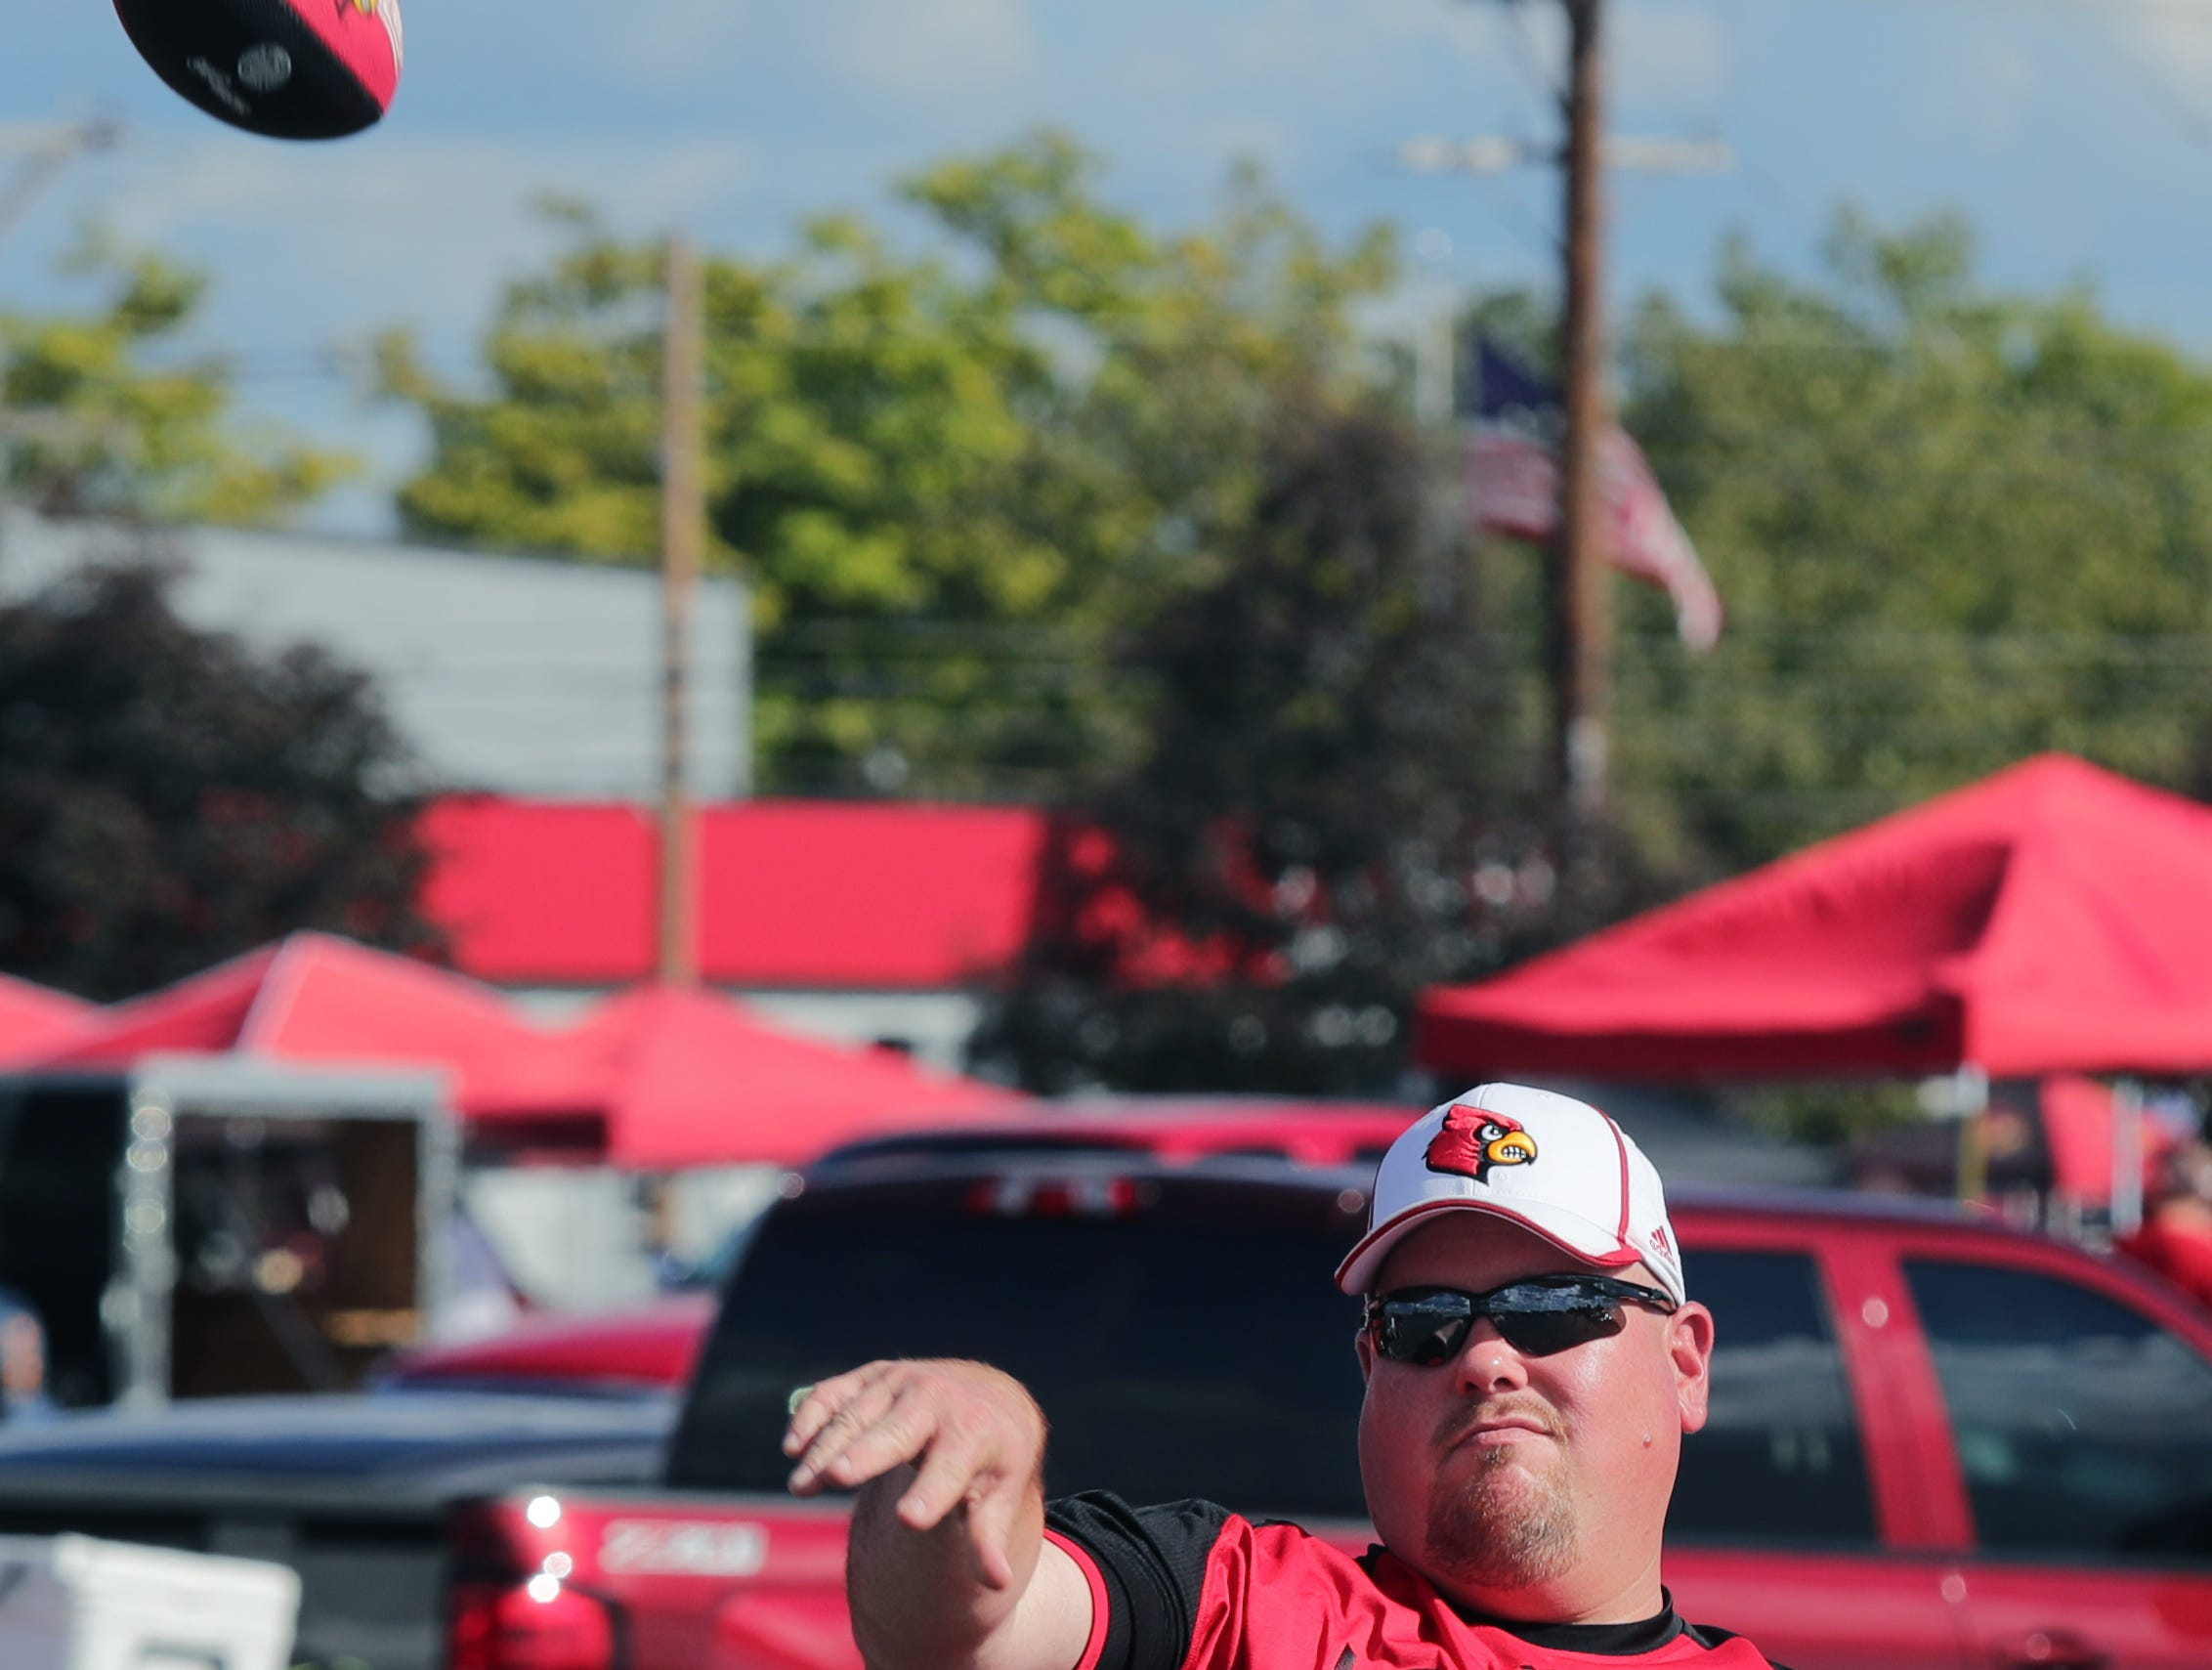 Fans tailgate before the Louisville vs Western Kentucky game on Saturday. 